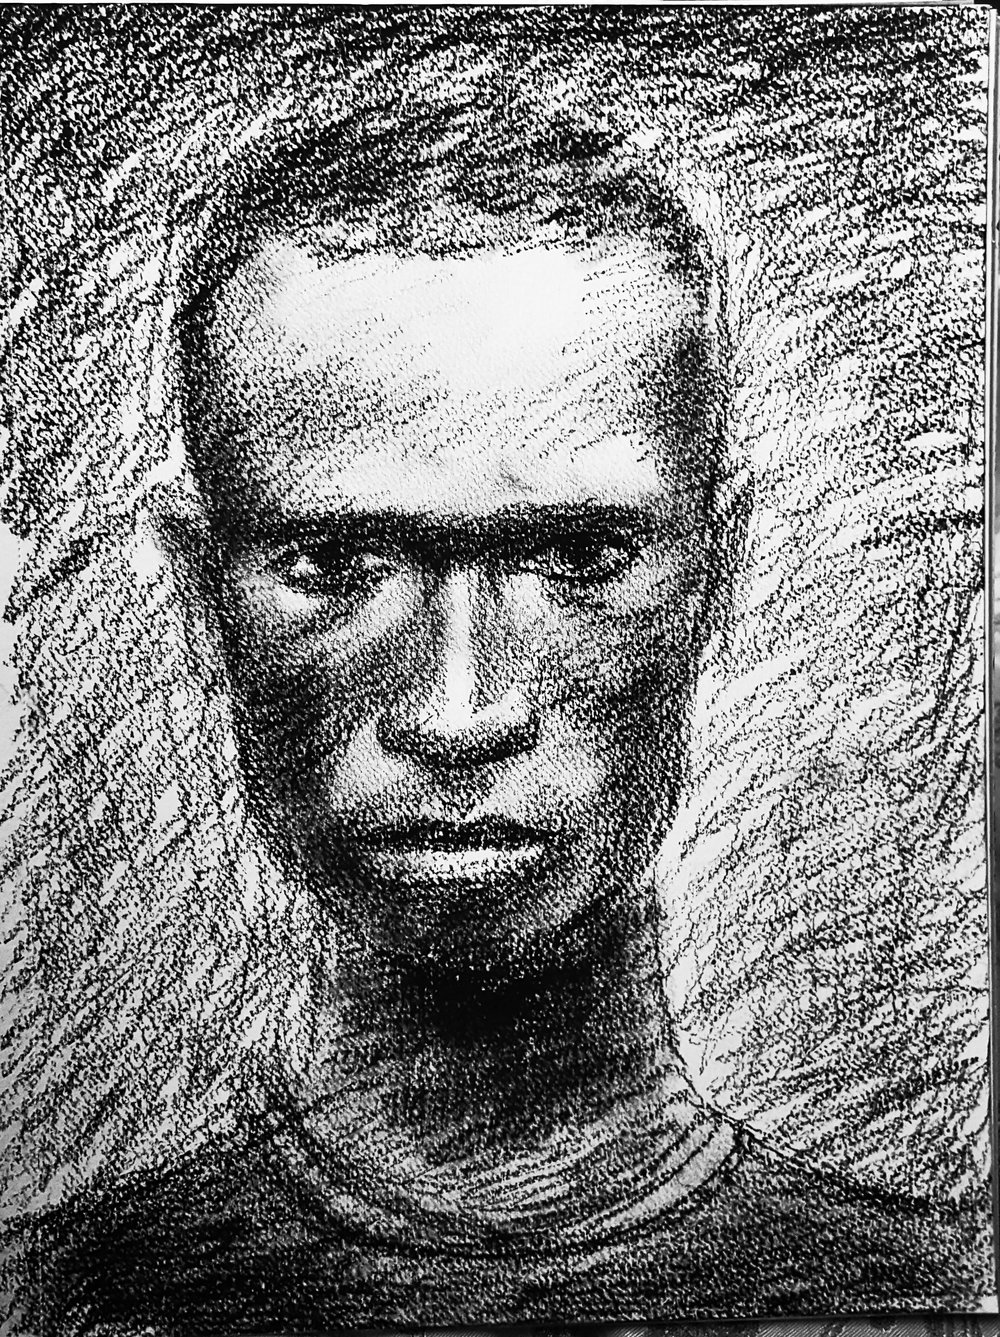 Drawing_Charcoal_3_edited.jpg